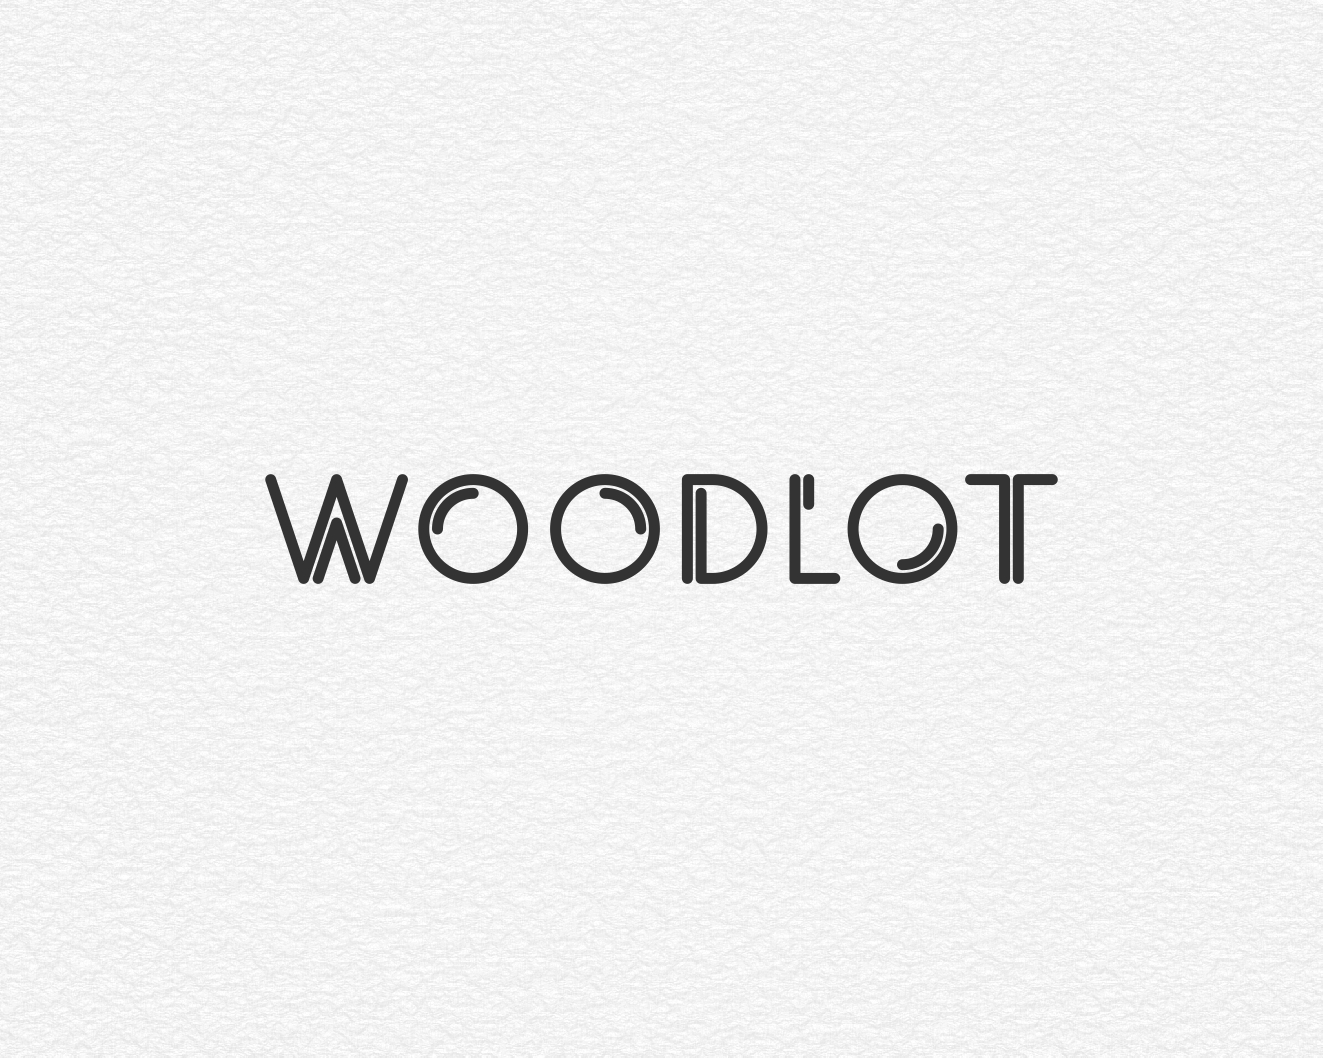 Logo Design by Rares.Andrei - Entry No. 65 in the Logo Design Contest Fun Logo Design for woodlot.